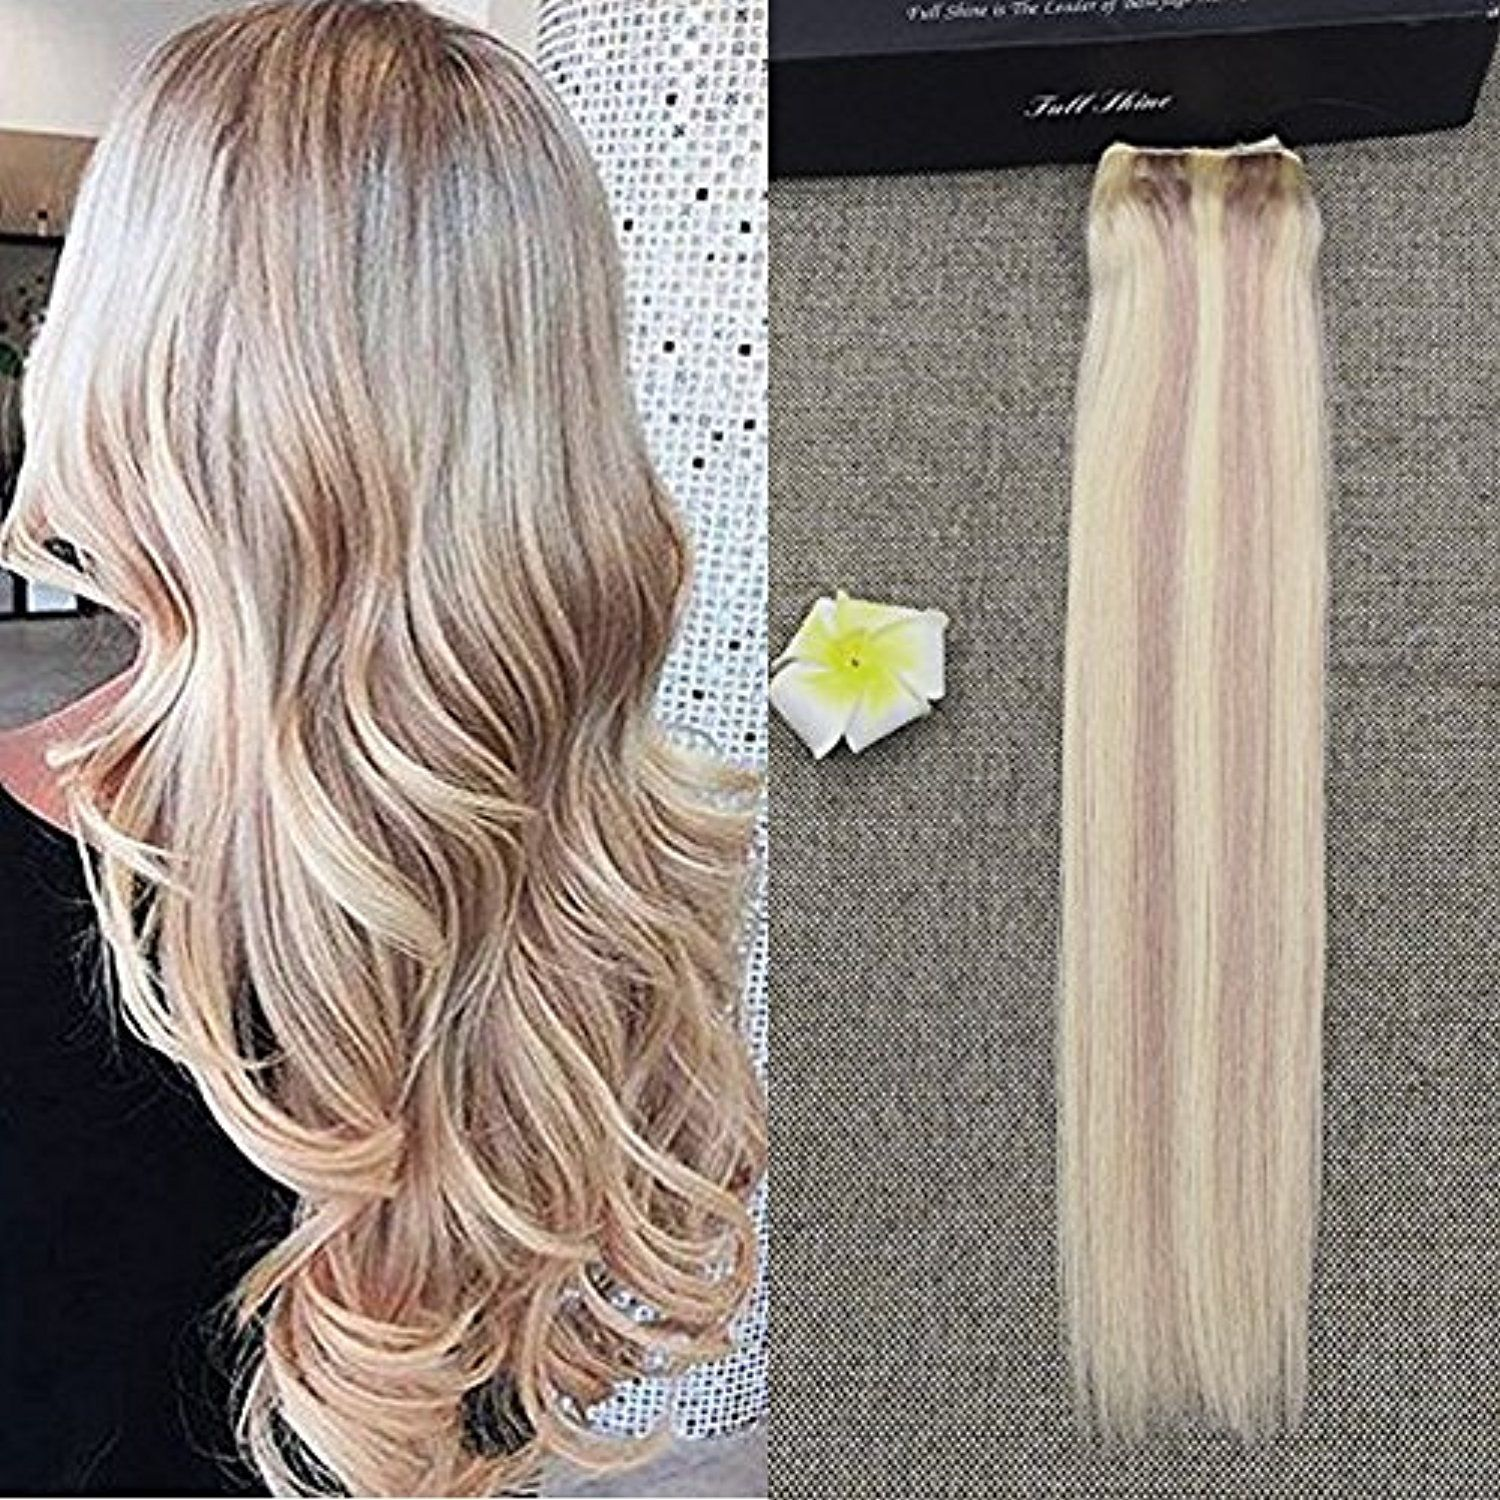 Full Shine 20inch Flip Human Hair Extension With An Adjustable